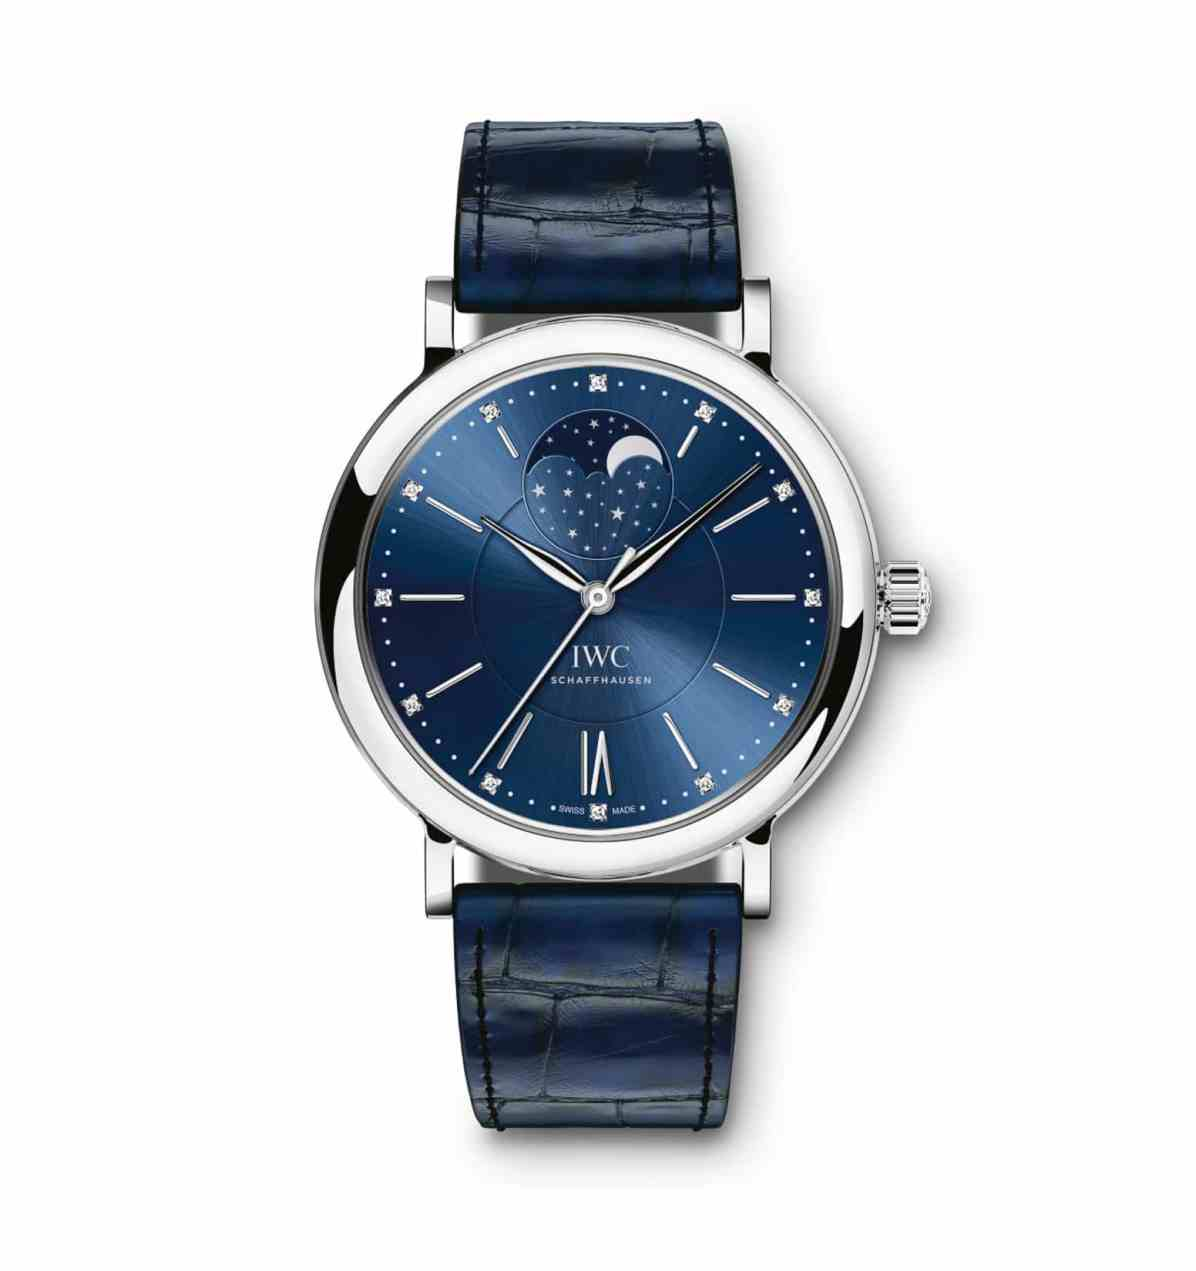 2016 - IW459006 Portofino Automatic Moon Phase 37 Edition _Laureus Sport for Good Foundation__1107835